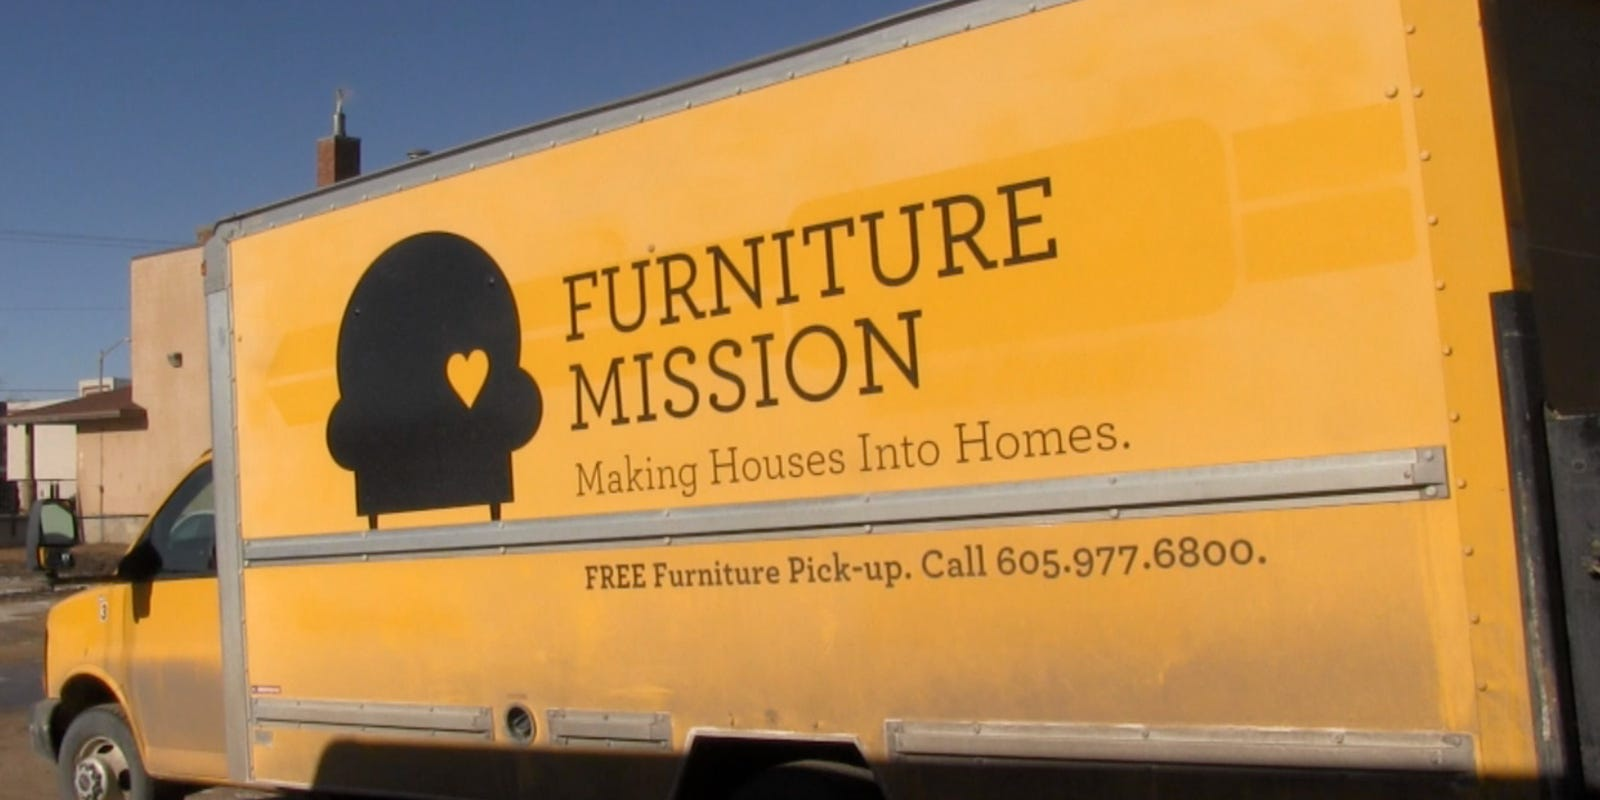 Furniture for folks in need